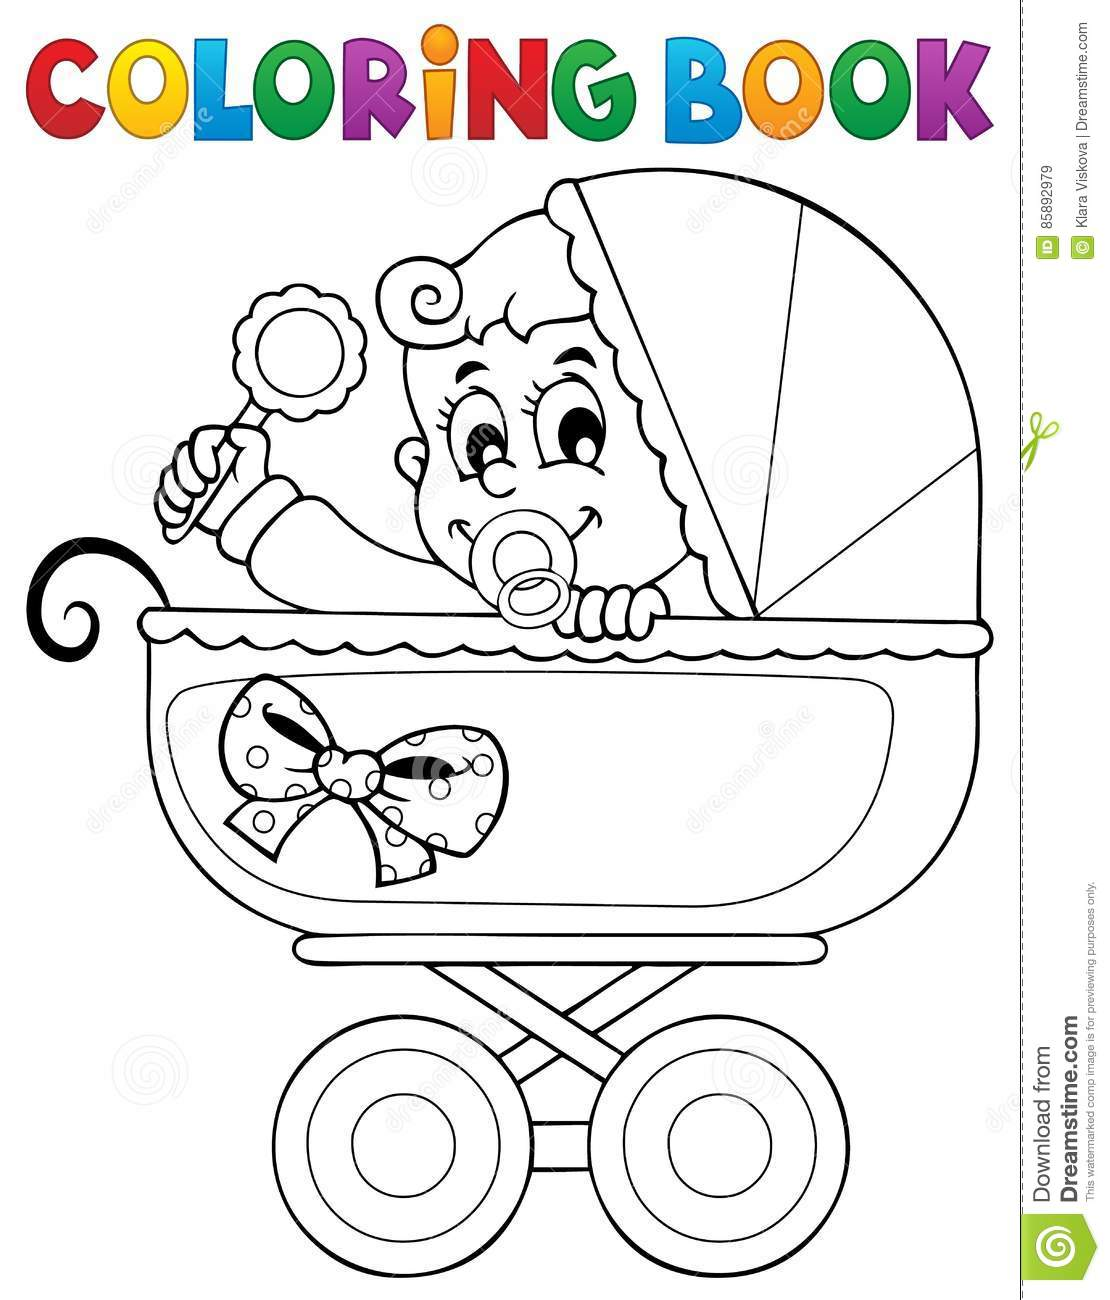 Coloring Book Baby Theme Image 5 Stock Vector Illustration Of